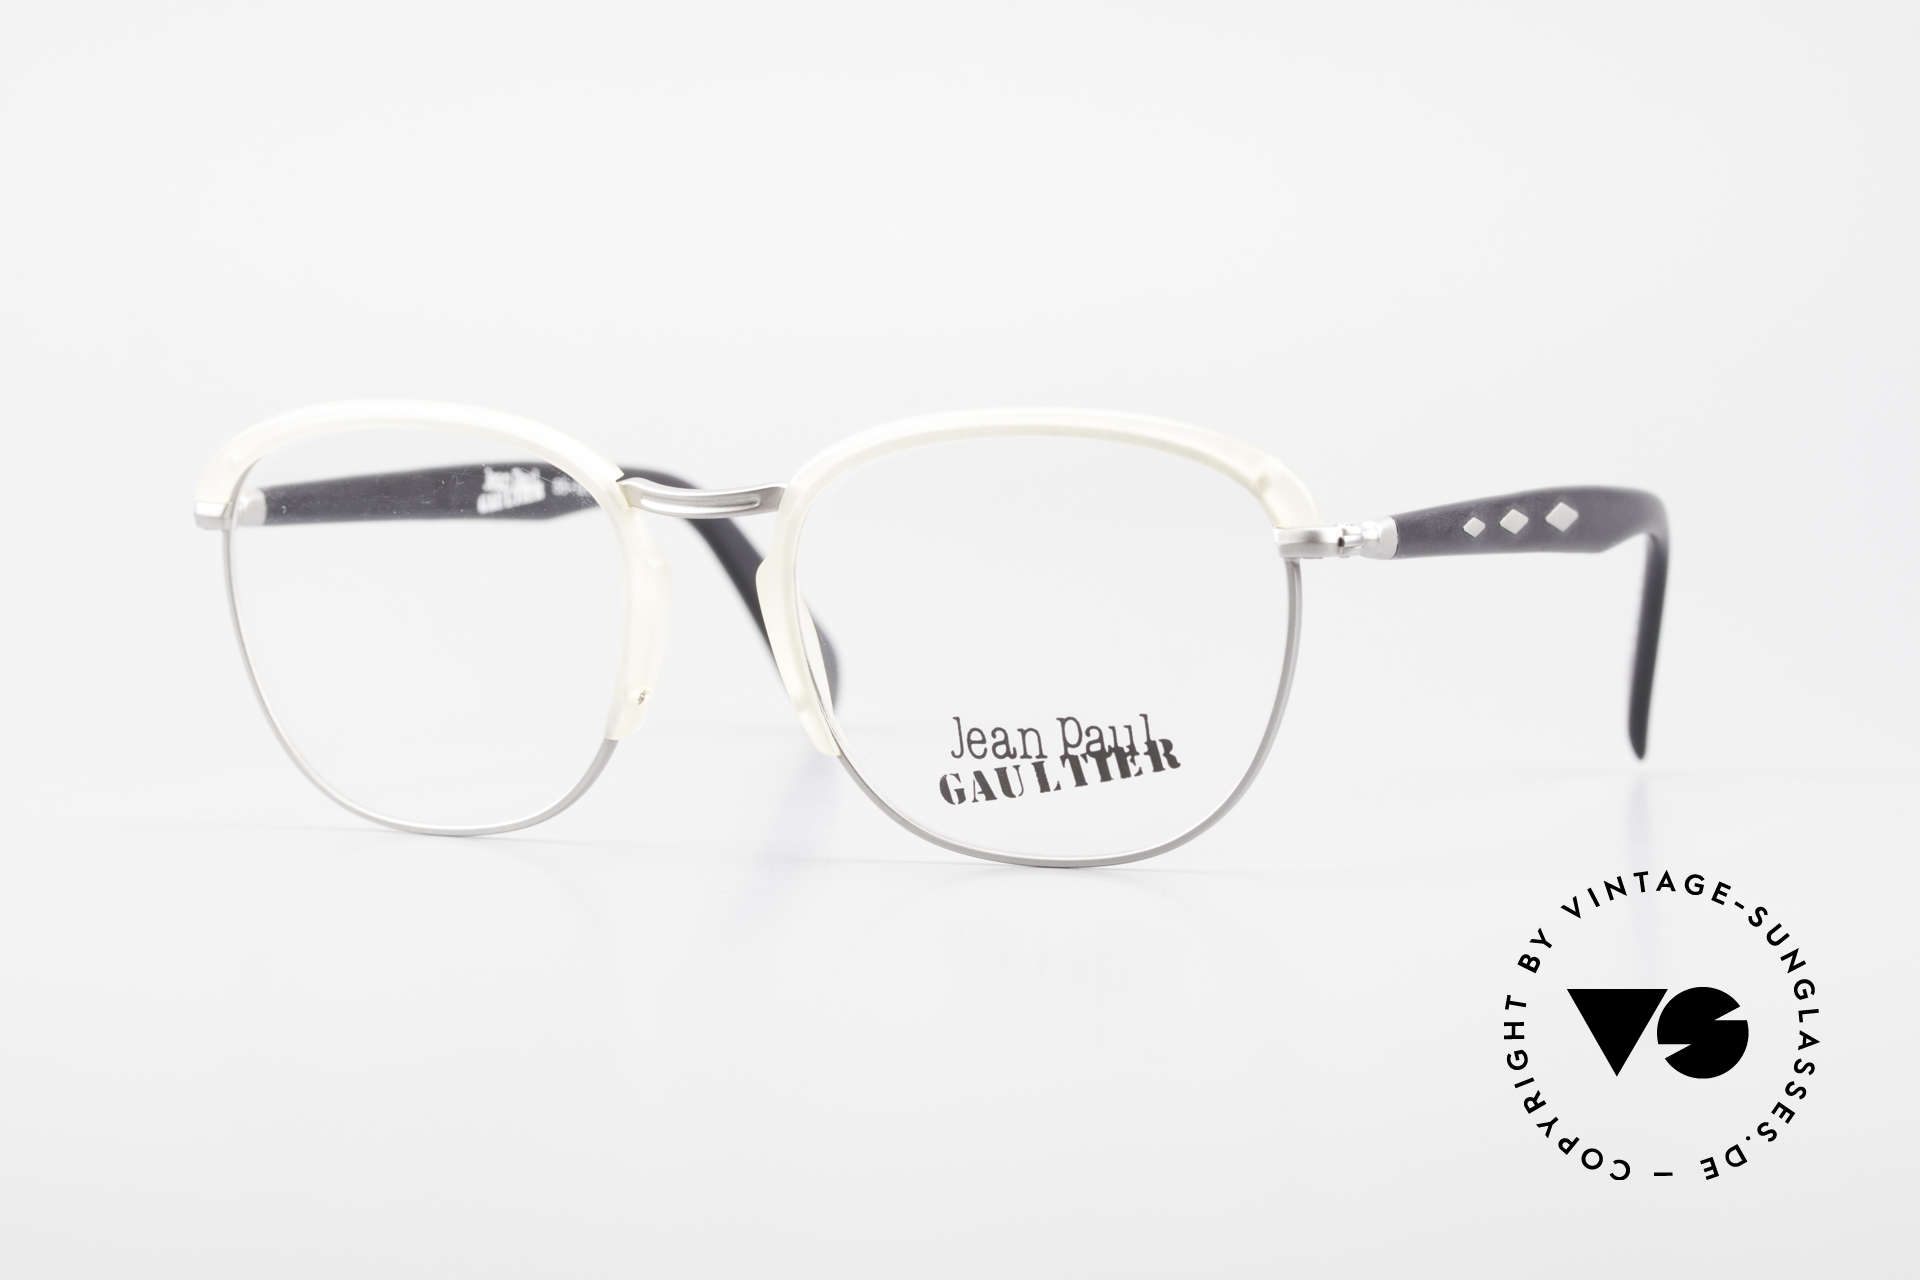 Jean Paul Gaultier 55-1273 Old Vintage 90's Specs JPG, 90's vintage Gaultier designer eyeglass-frame, Made for Men and Women